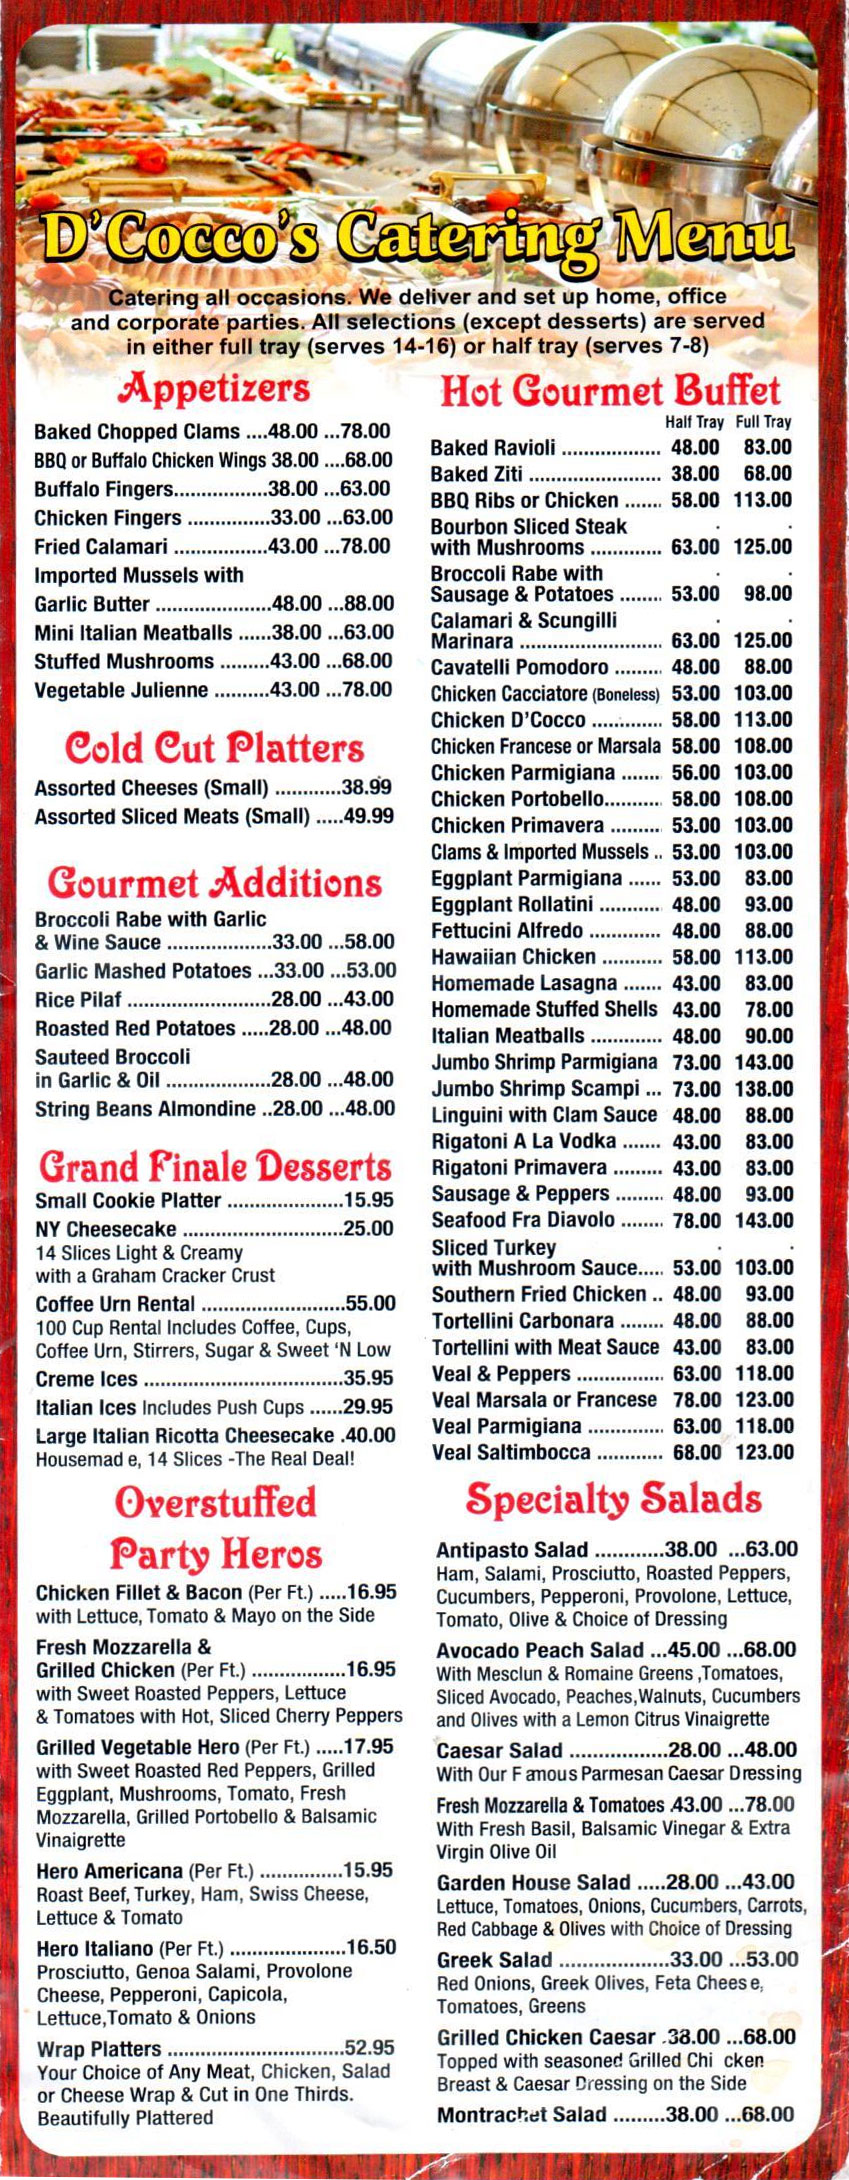 Catering Menu from D'Cocco's Pizza & Italian Restaurant